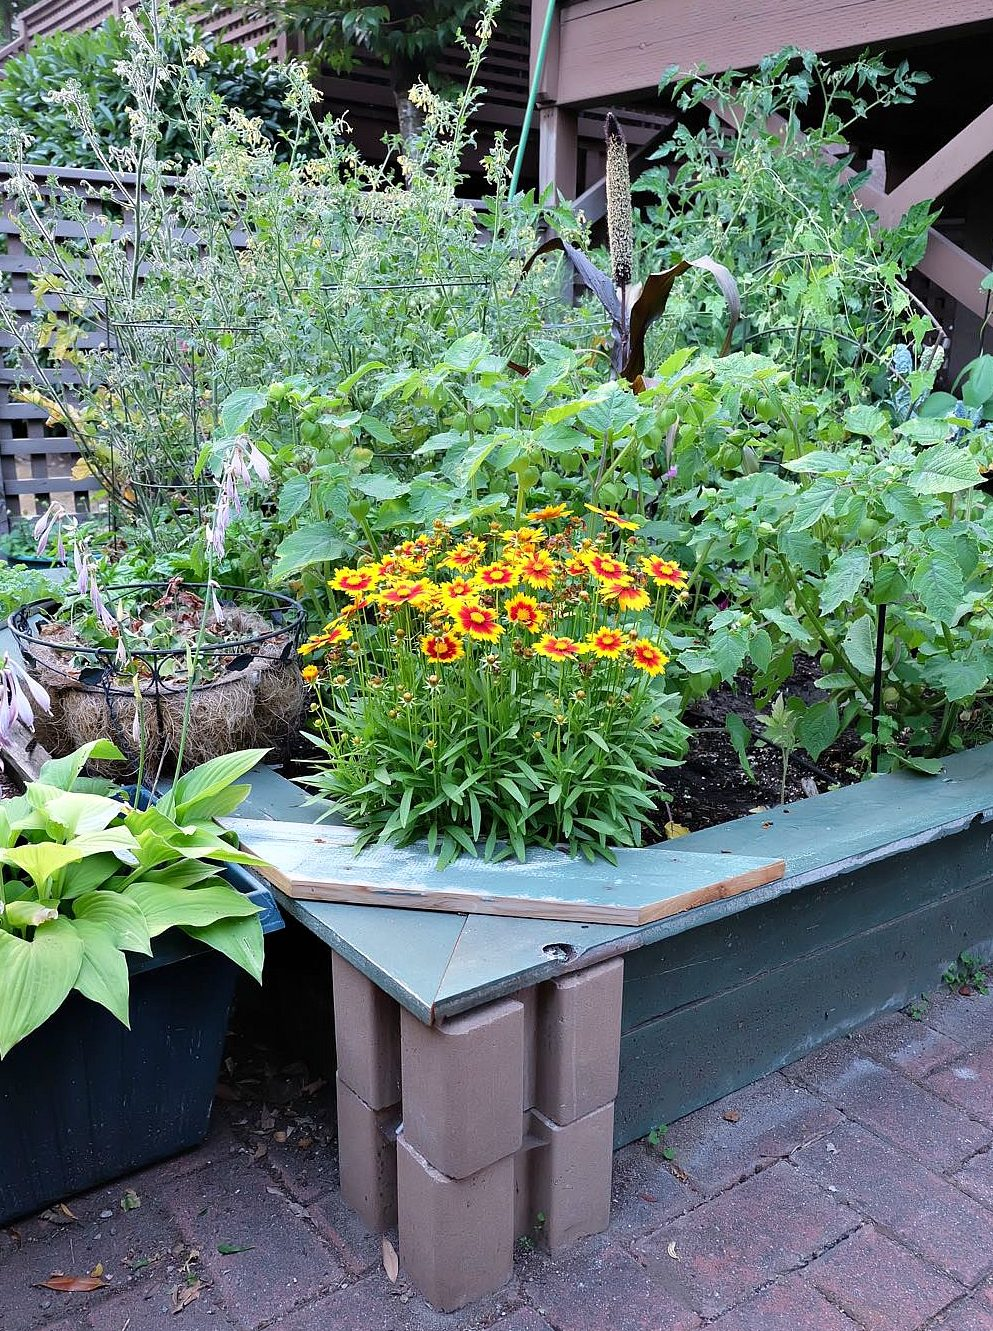 Expand your patio garden or backyard garden with this easy DIY planter box from Hello Creative Family. No power tools required, this planter box can be made in an hour or less in a small space, large space or any size in between. Includes step by step instructions. #Gardening #PatioGardening #SmallSpaceGardening #DIY